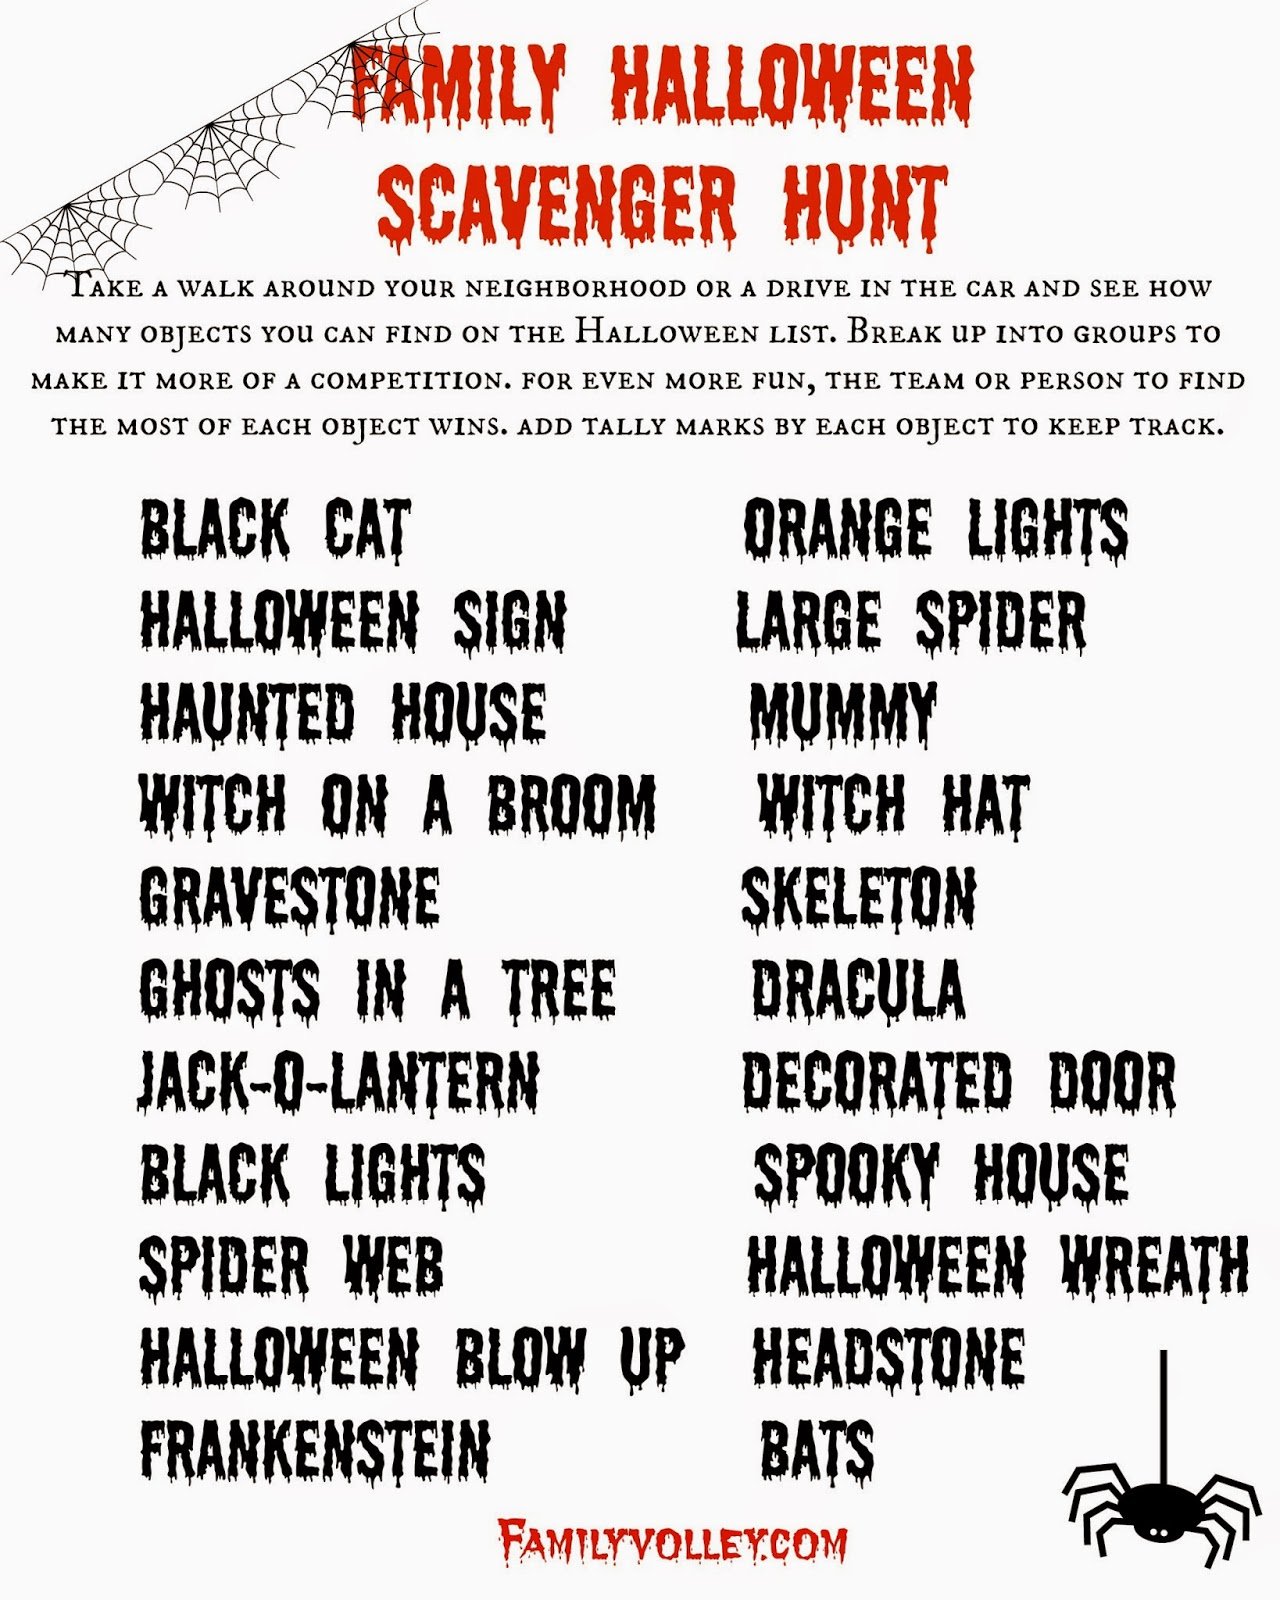 Family Volley: Trick or Treat Scavenger Hunt - Happy Halloween